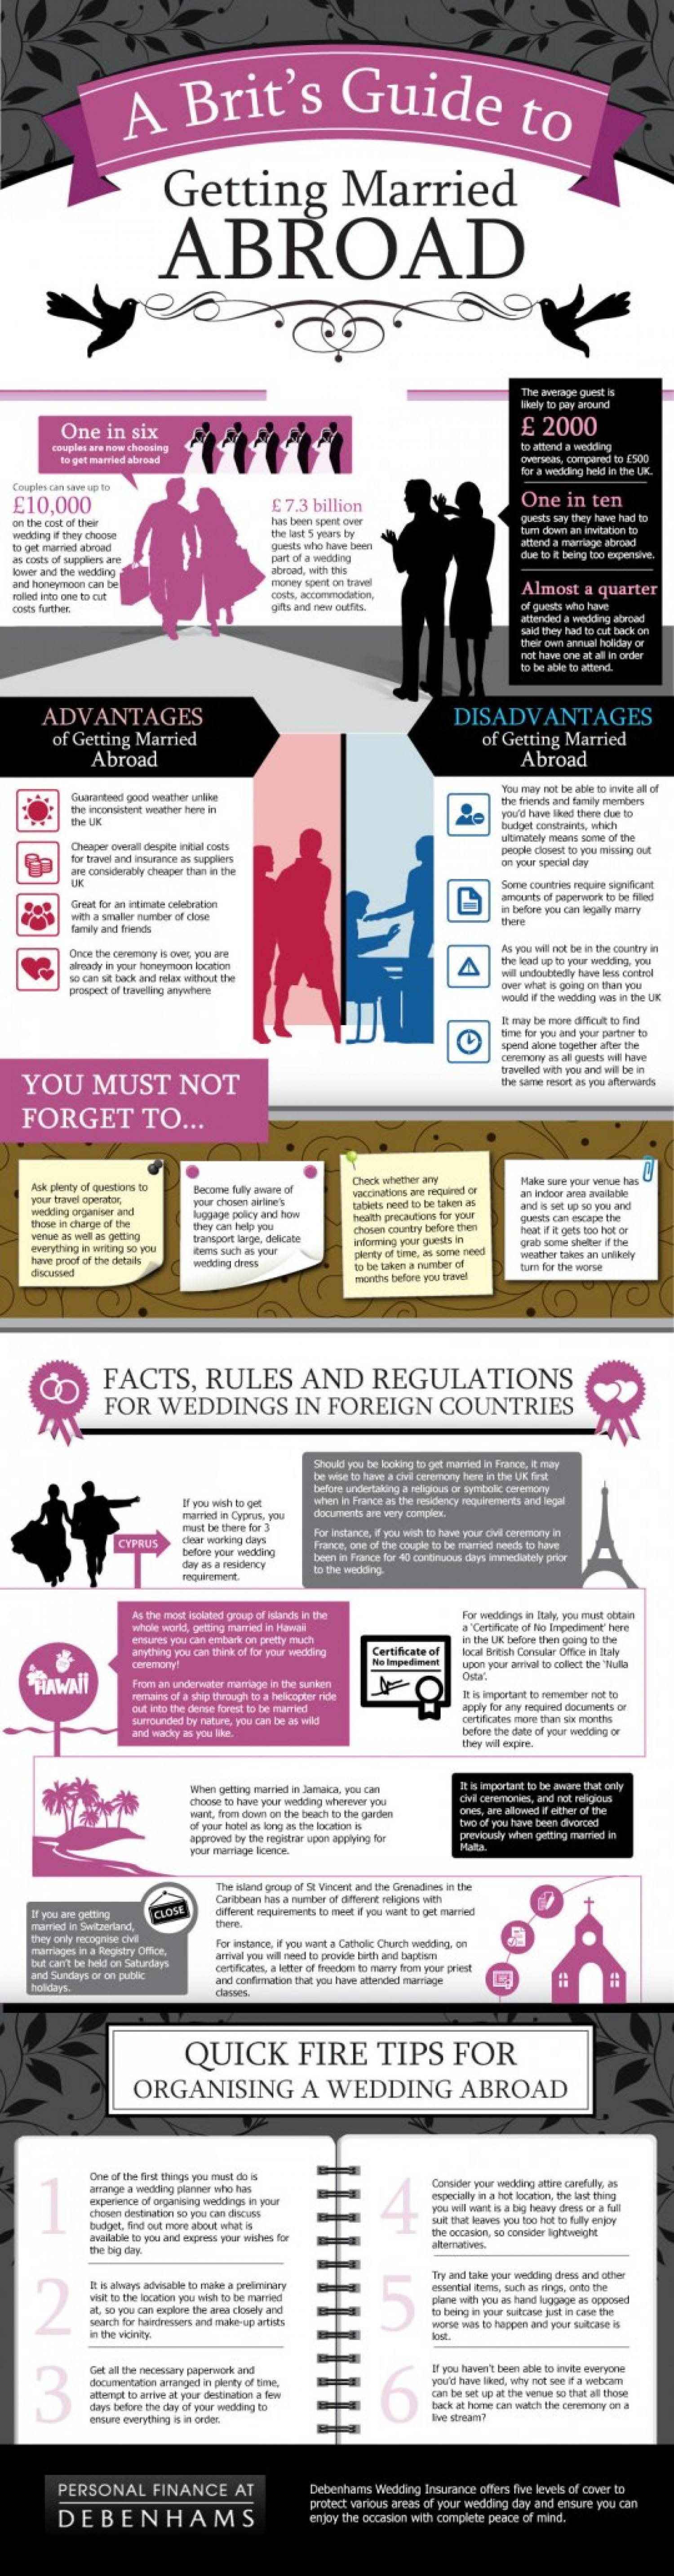 A Brit's Guide to Getting Married Abroad Infographic